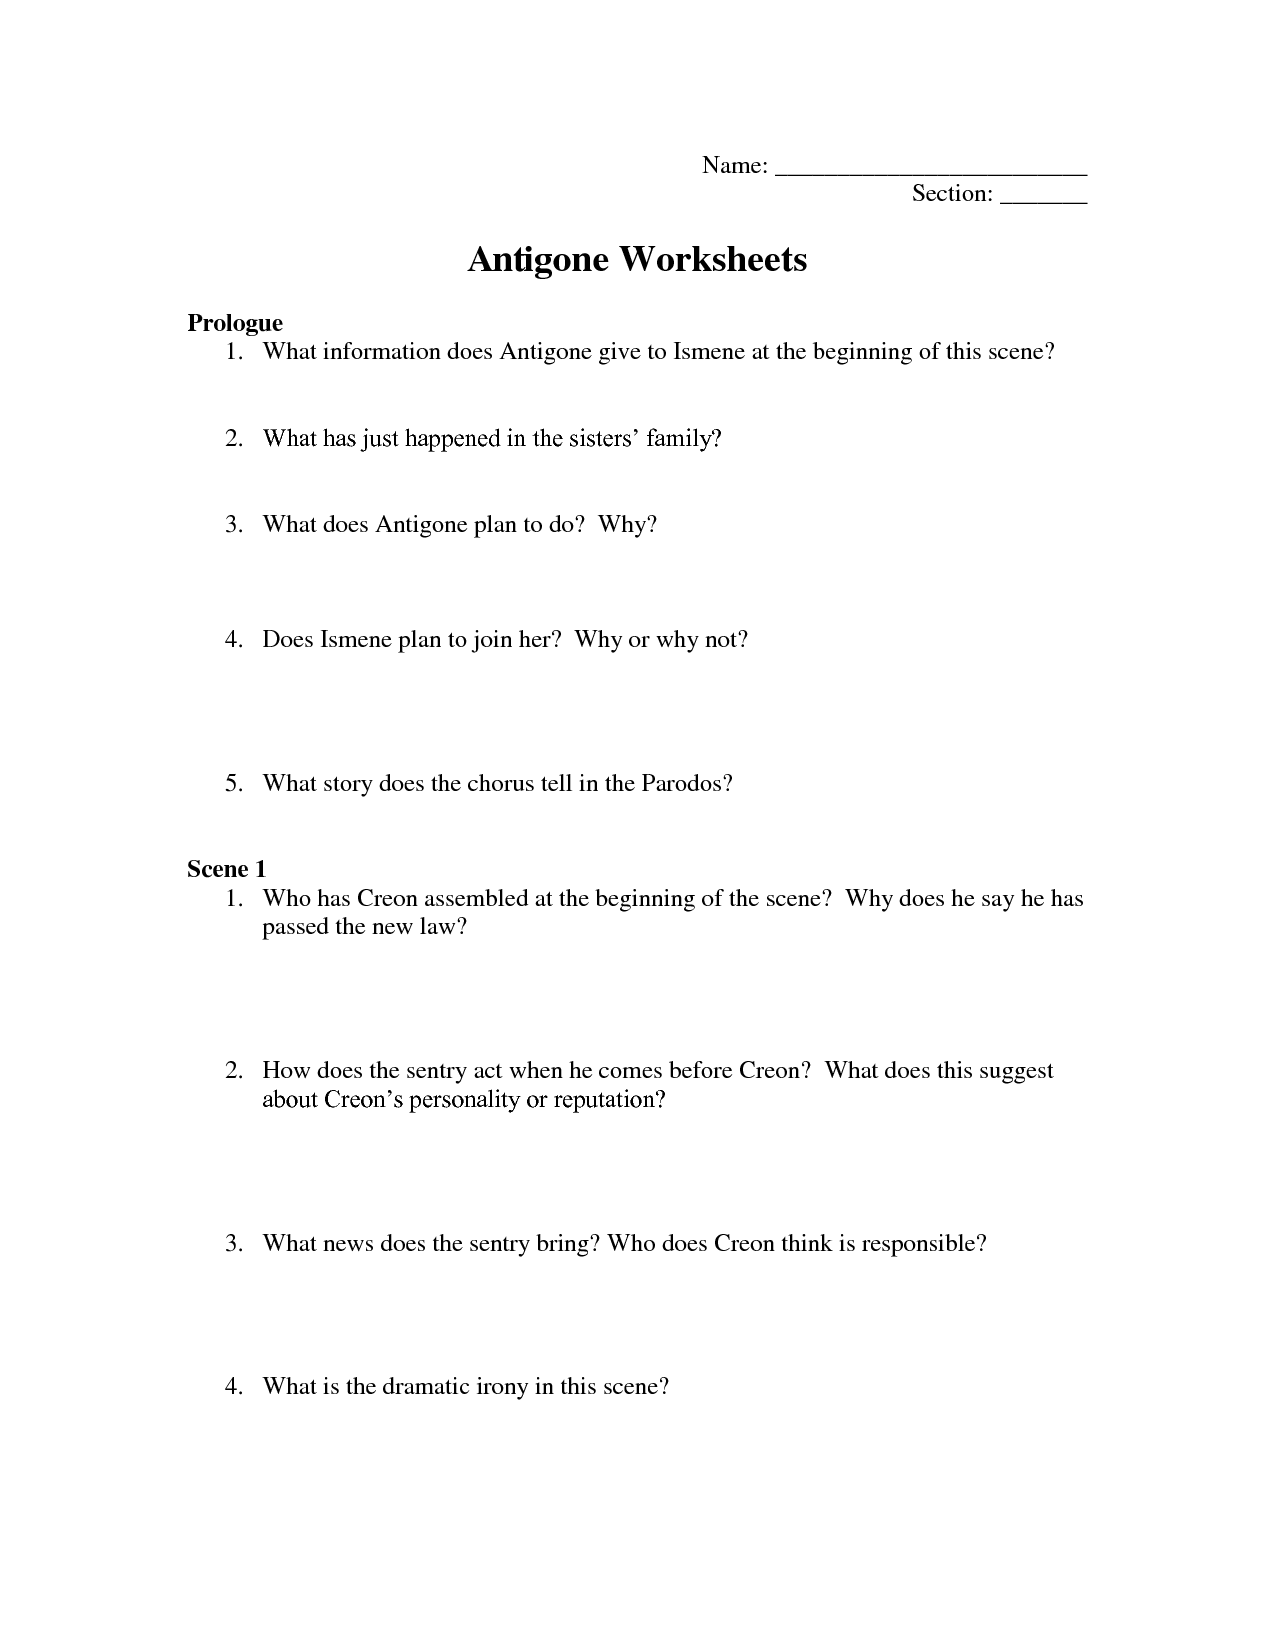 Worksheets Antigone Worksheet Answers antigone worksheets answers here httpwww mpsaz orgrmhs answers